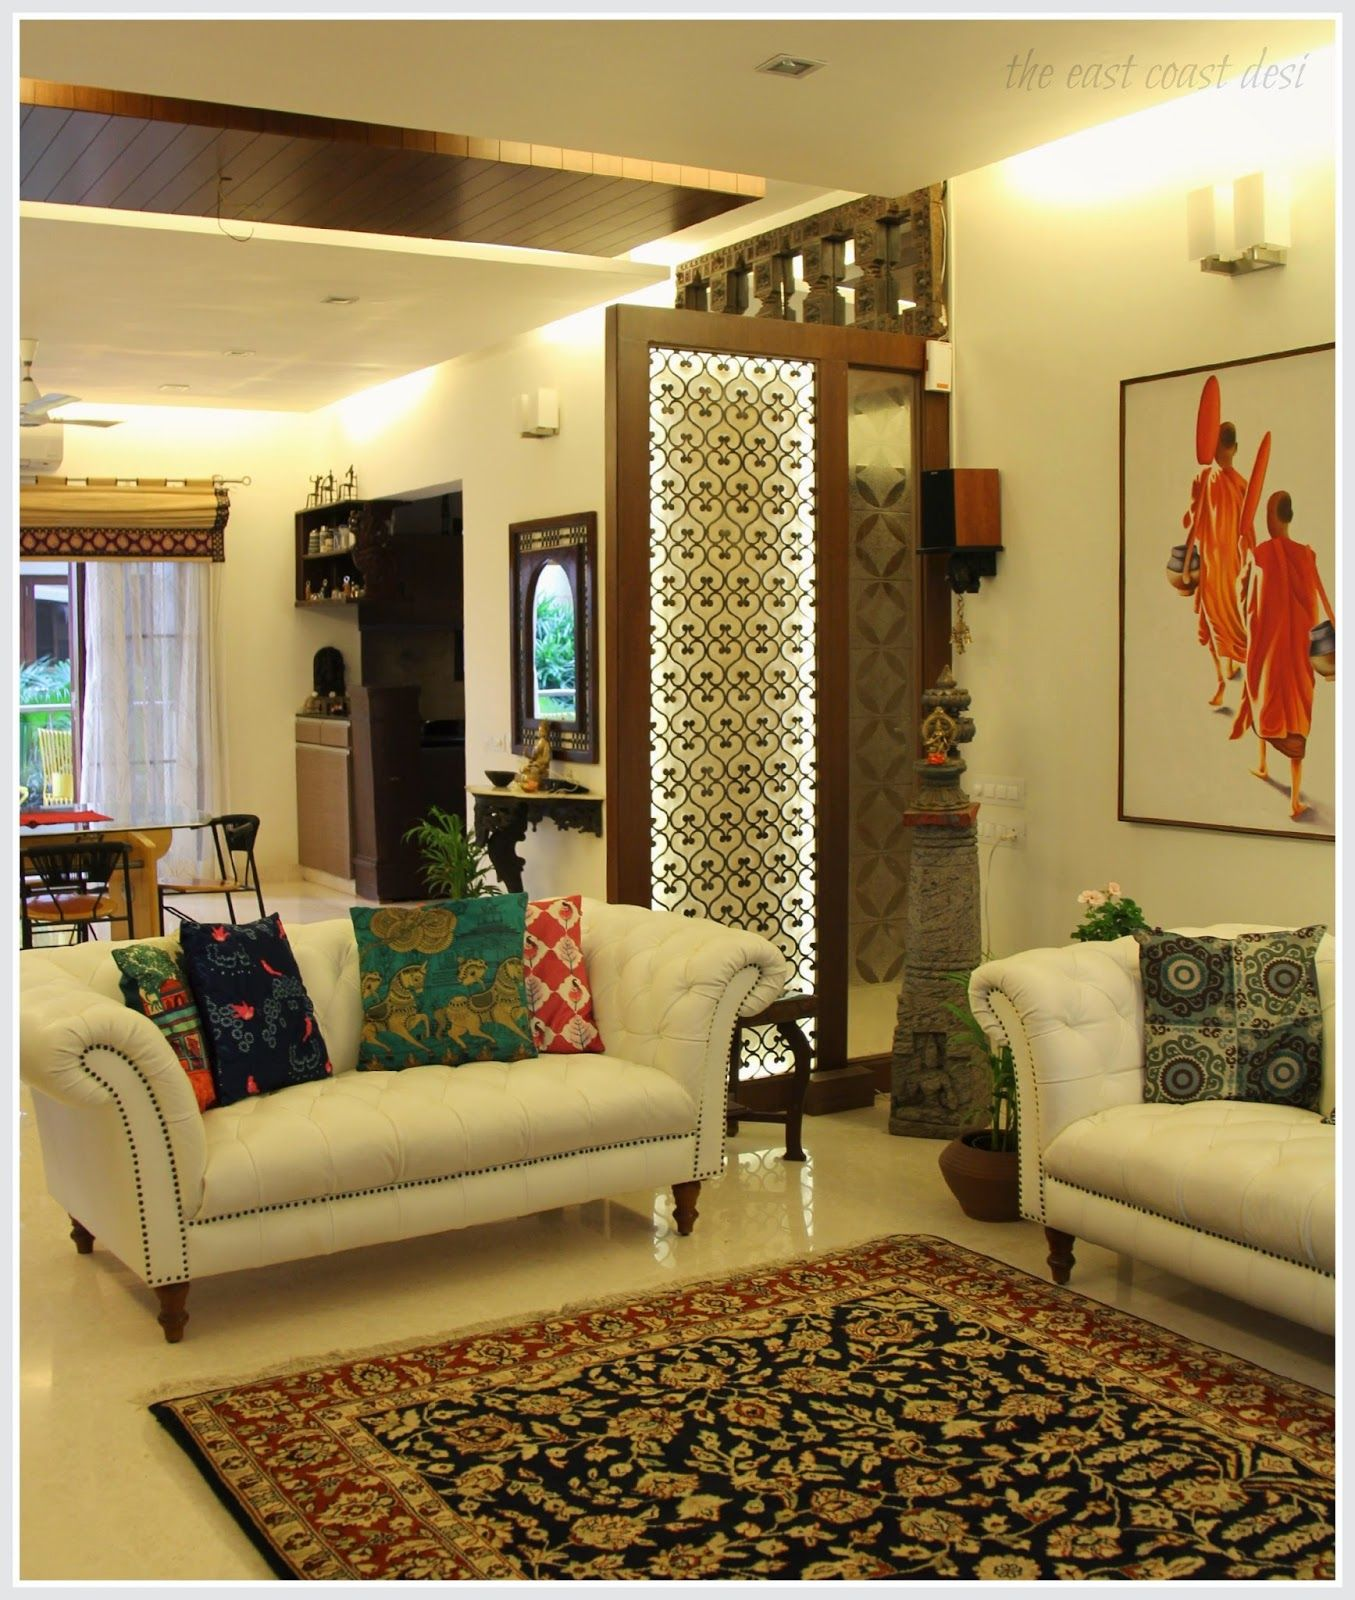 Indian Home Interior Design Tips: The East Coast Desi: Masterful Mixing (Home Tour)